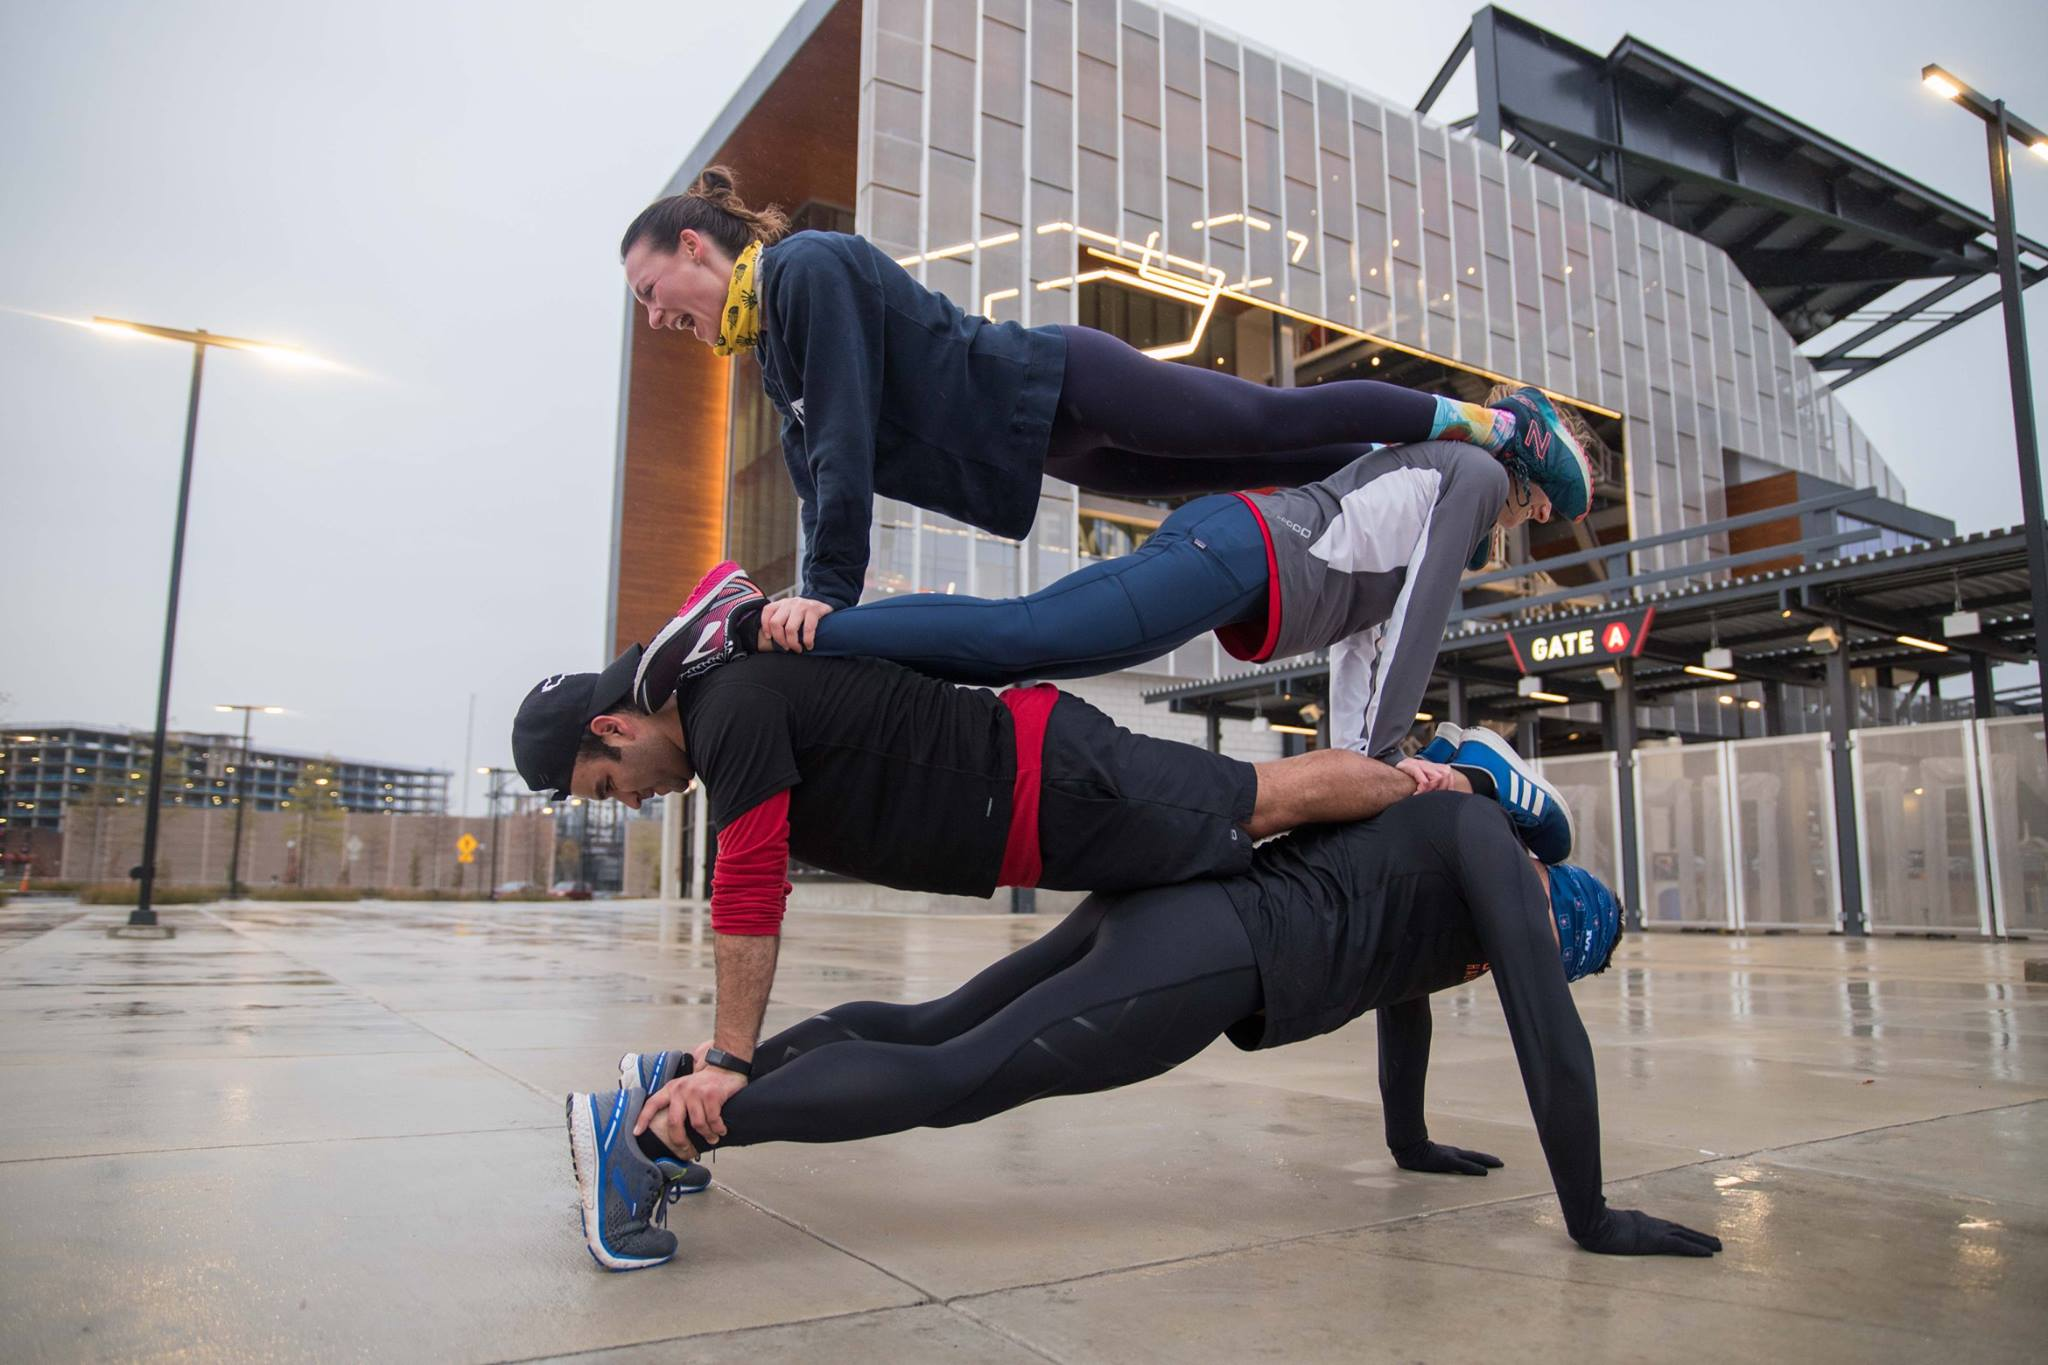 Four November Project DC tribe members partner on wet concrete outside Audi Field. Each person is stacked on top of the person below them like a plank sandwich. Ron Batcher is on the bottom of the plank pile. The tribe members are smiling and laughing.